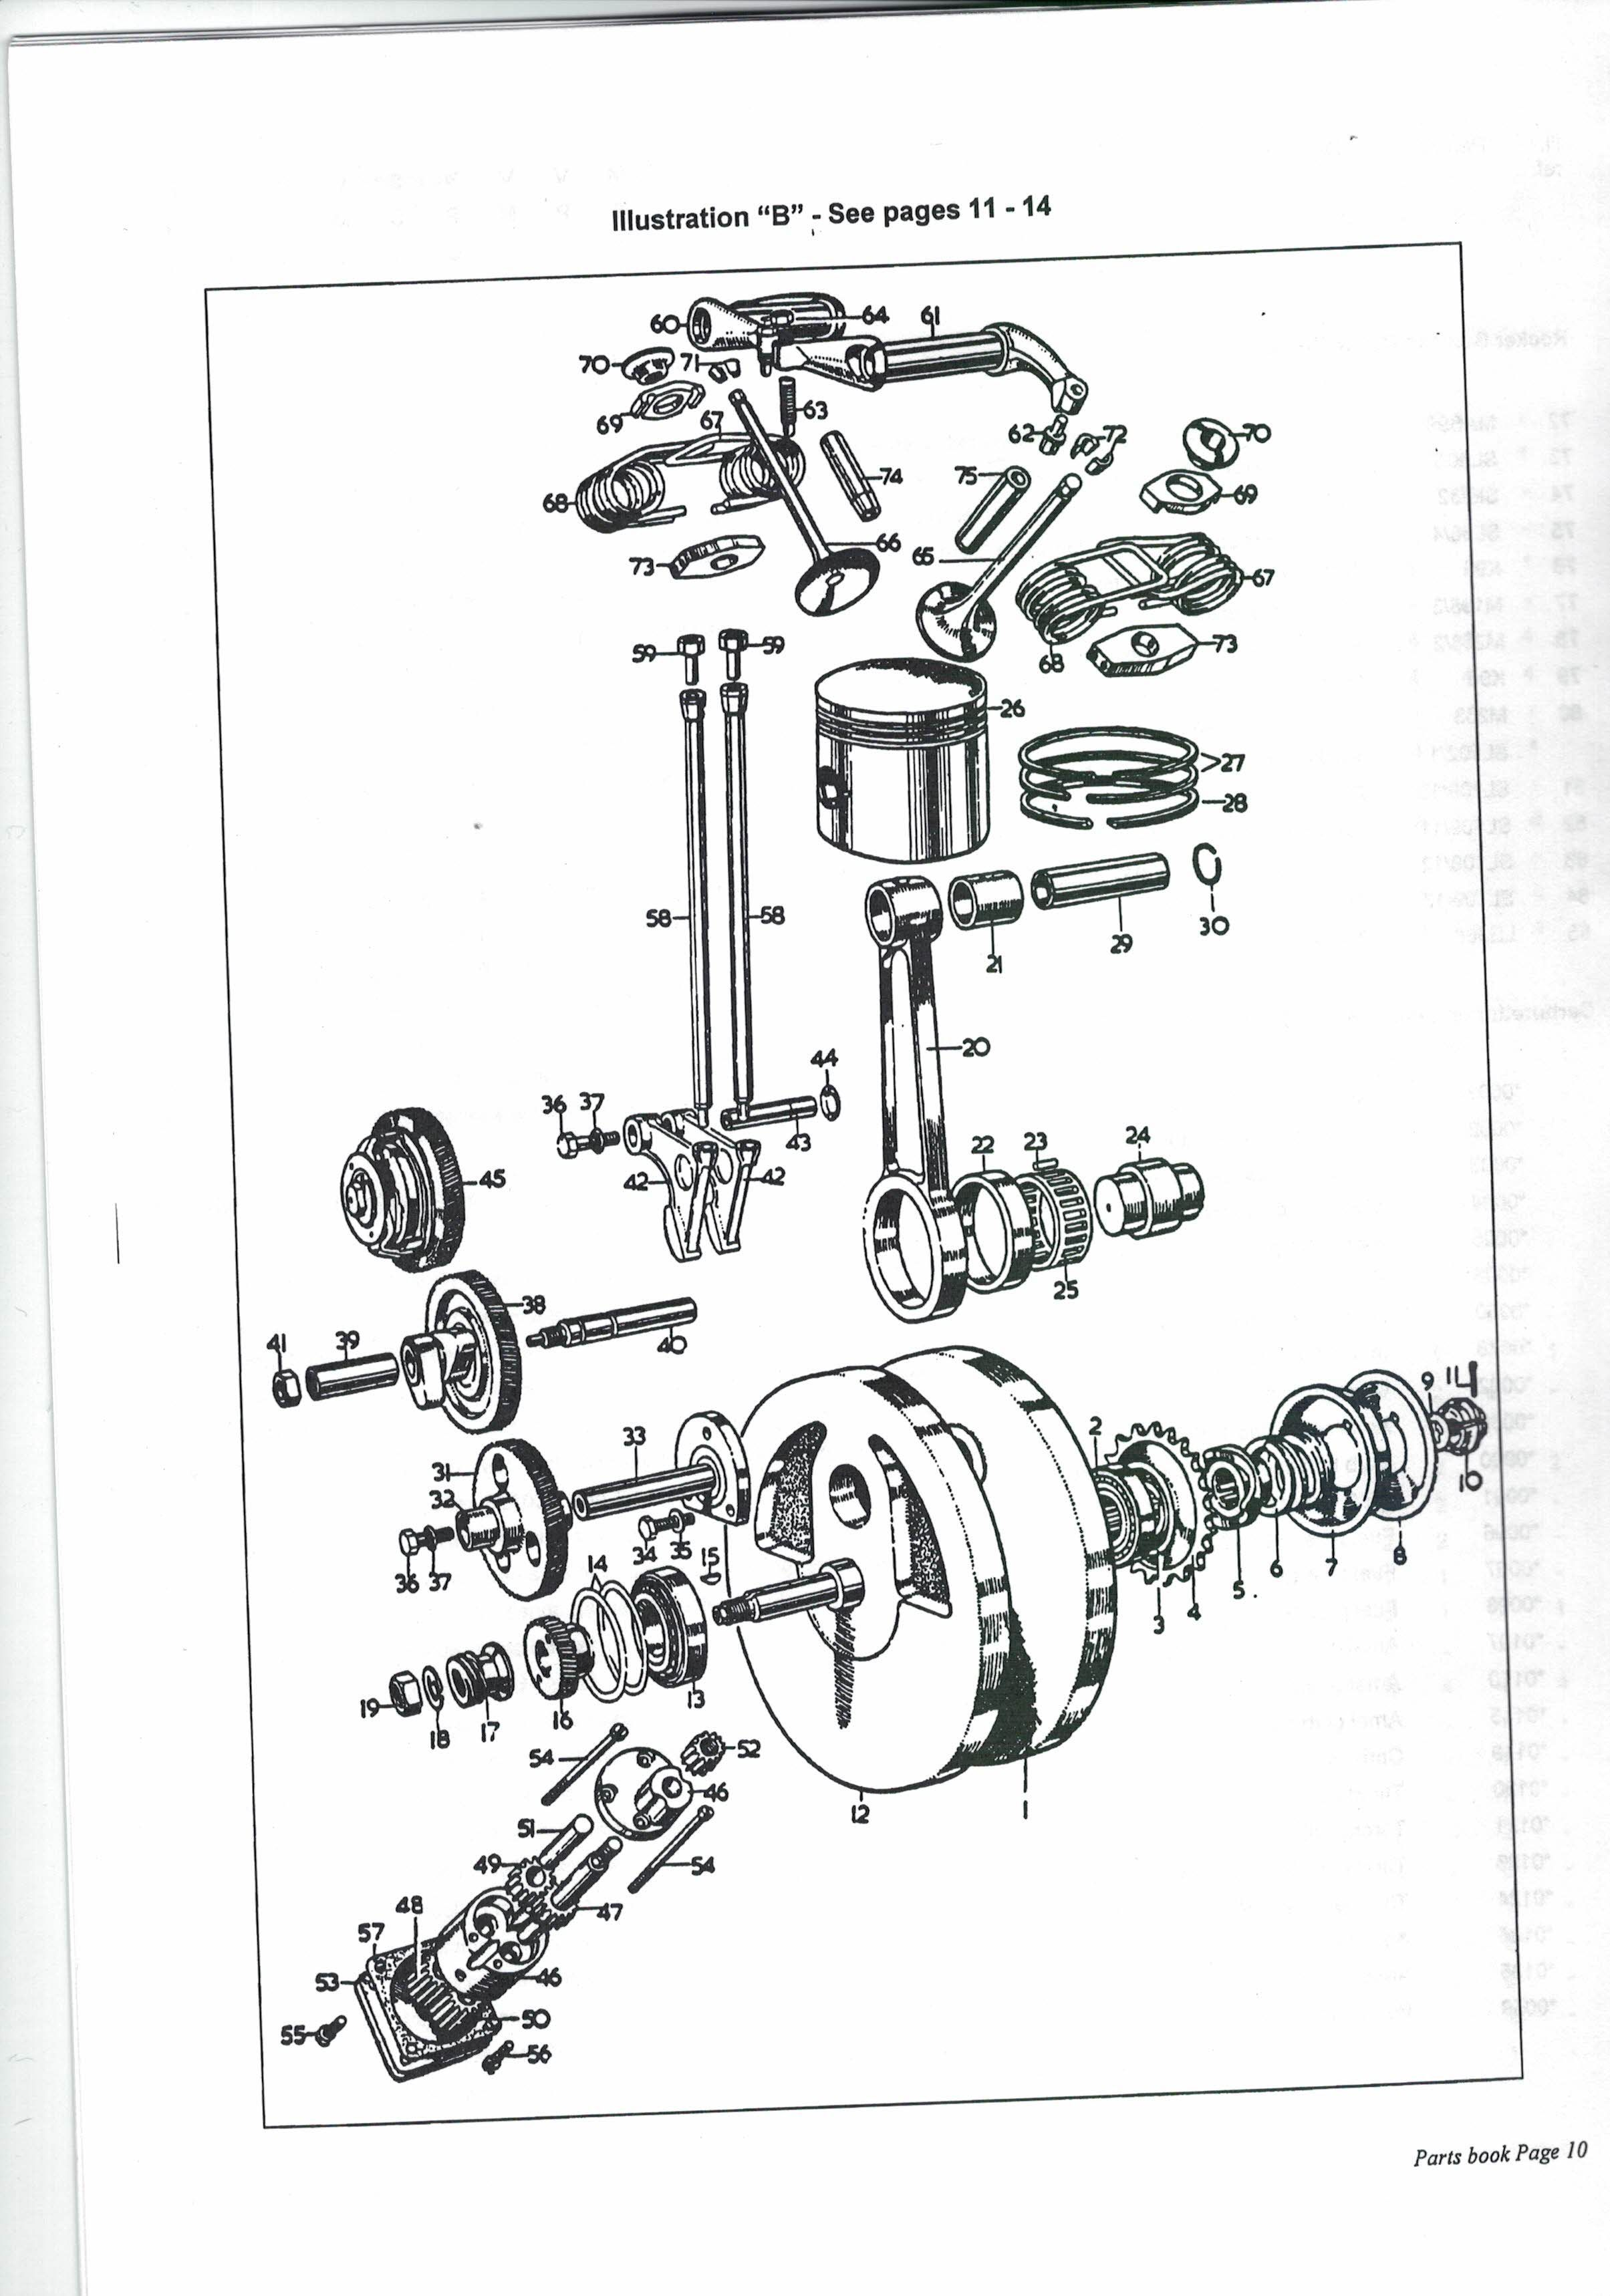 Diagrams Of Engine Clutch Amp Gearbox Part Numbers Mit Bildern